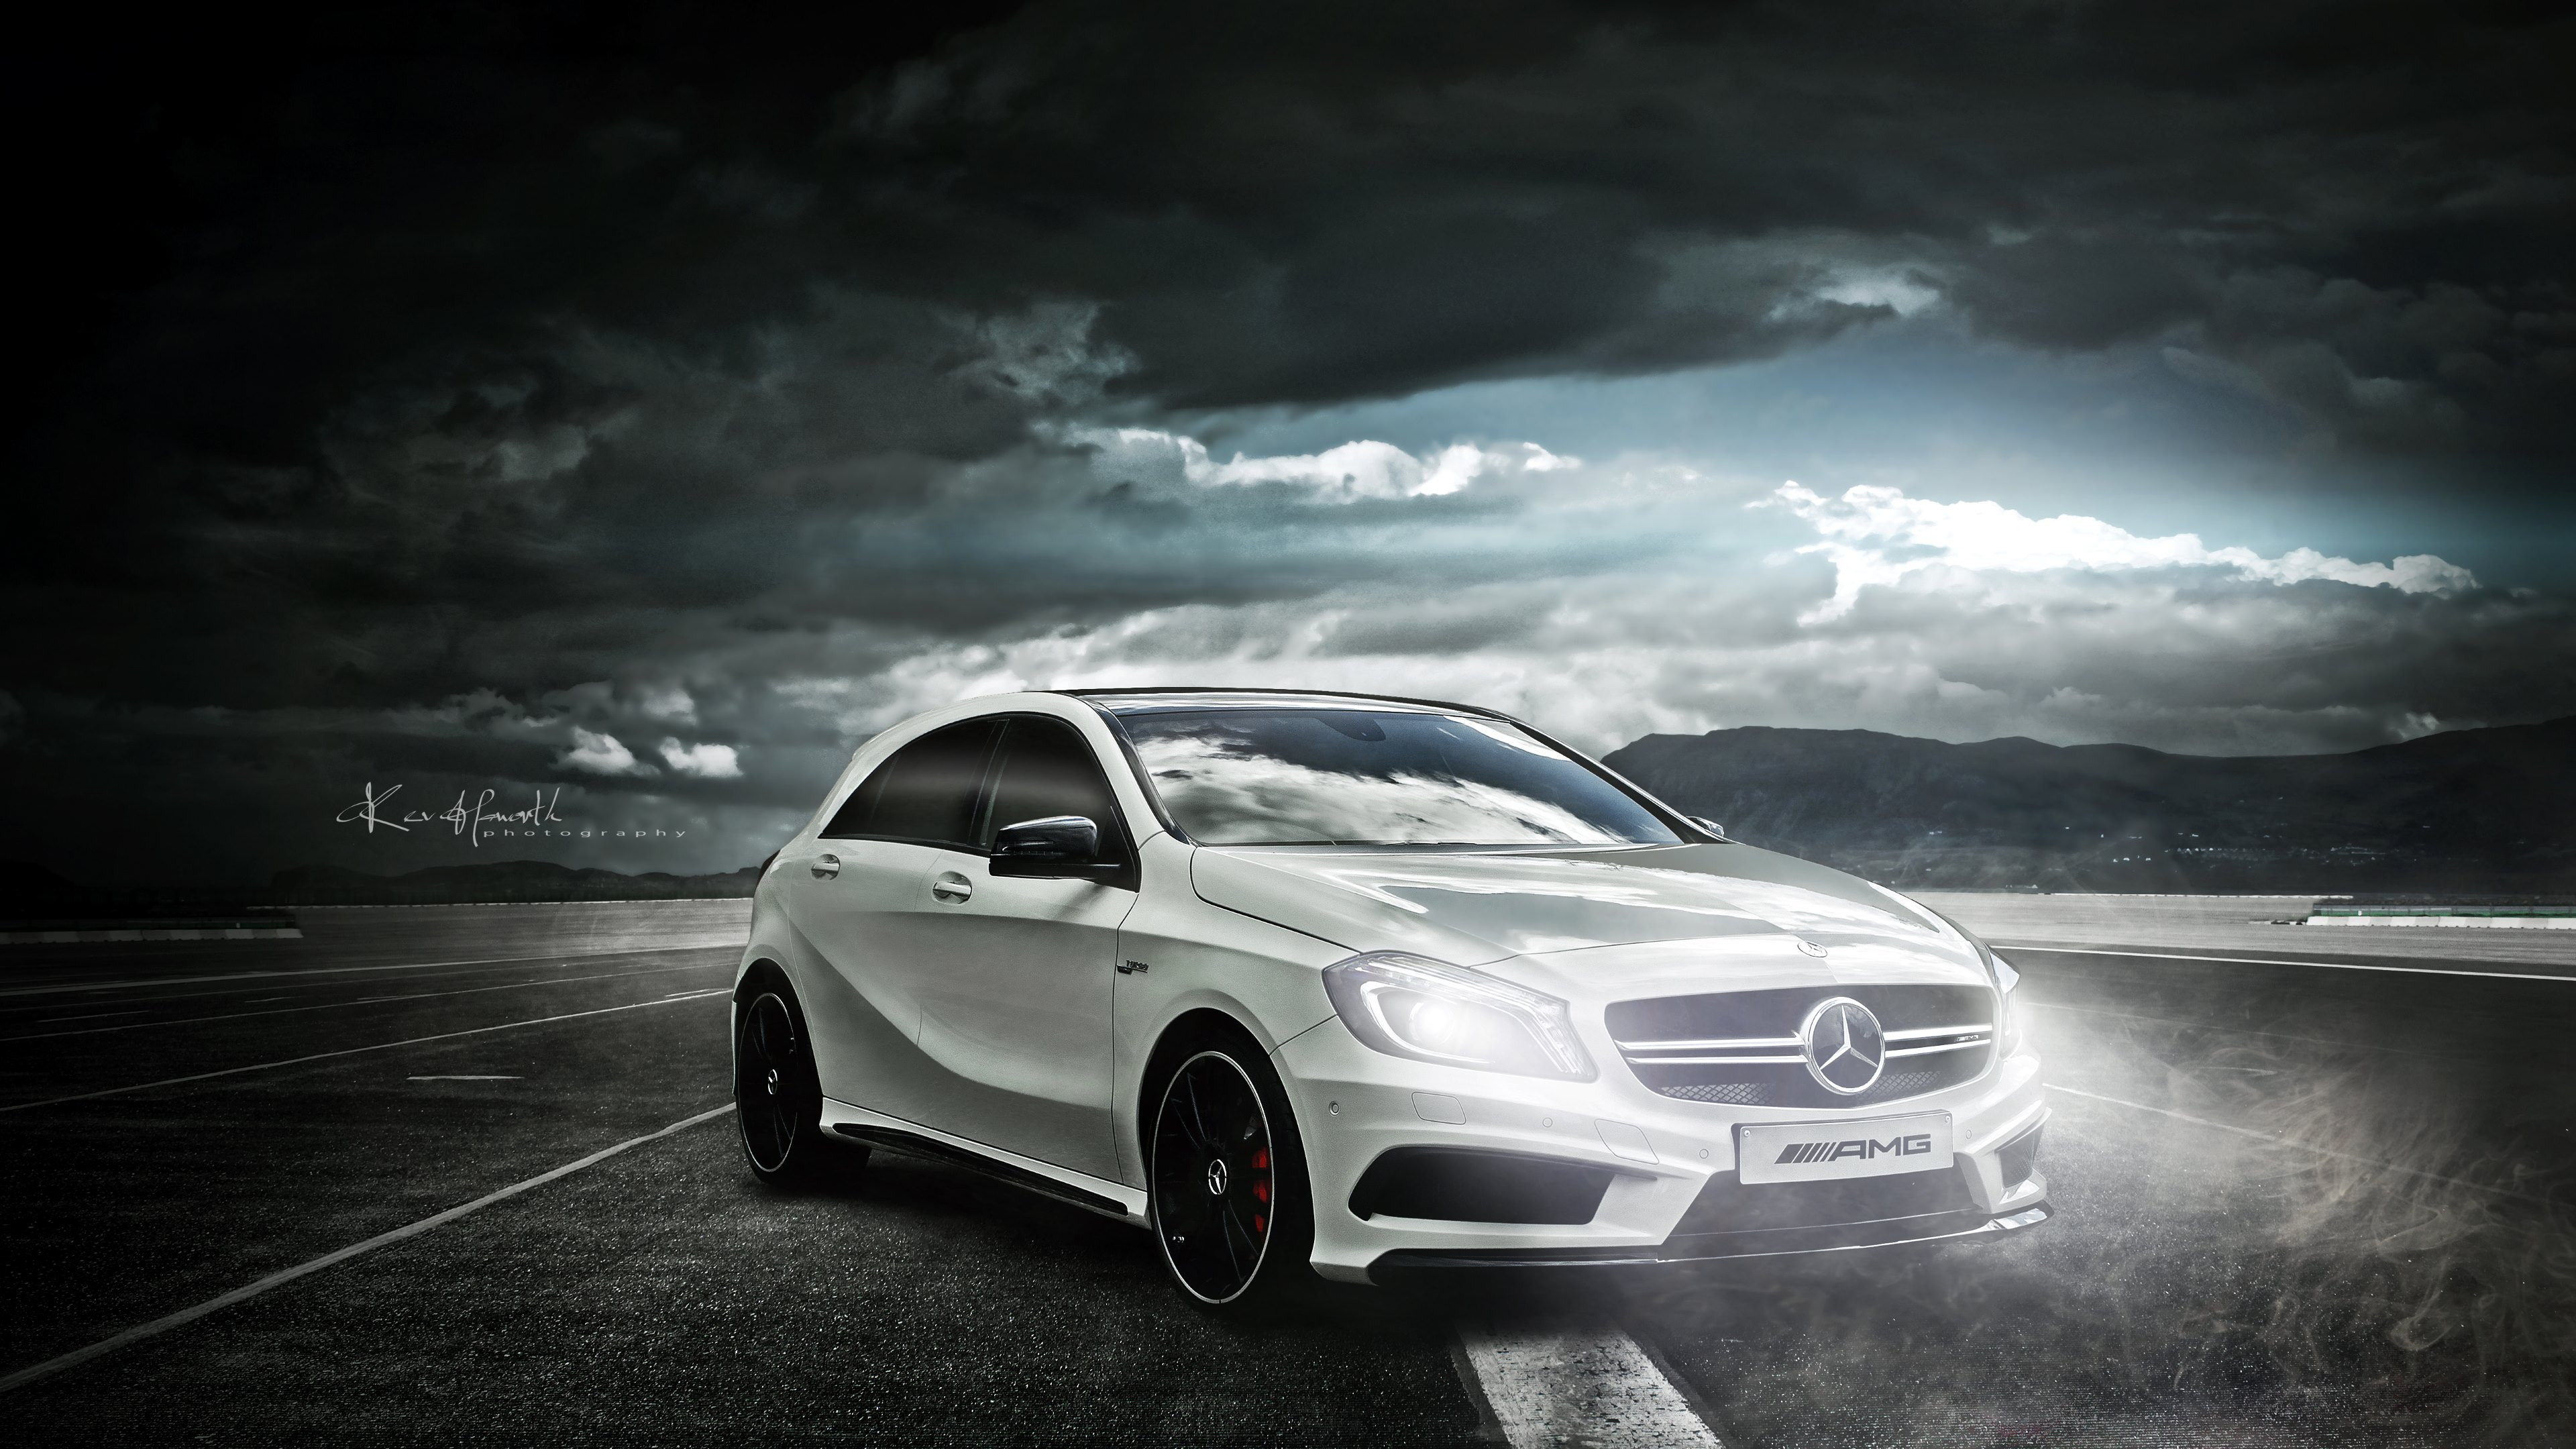 Mercedes AMG A45 uhd wallpapers   Ultra High Definition Wallpapers 3840x2160